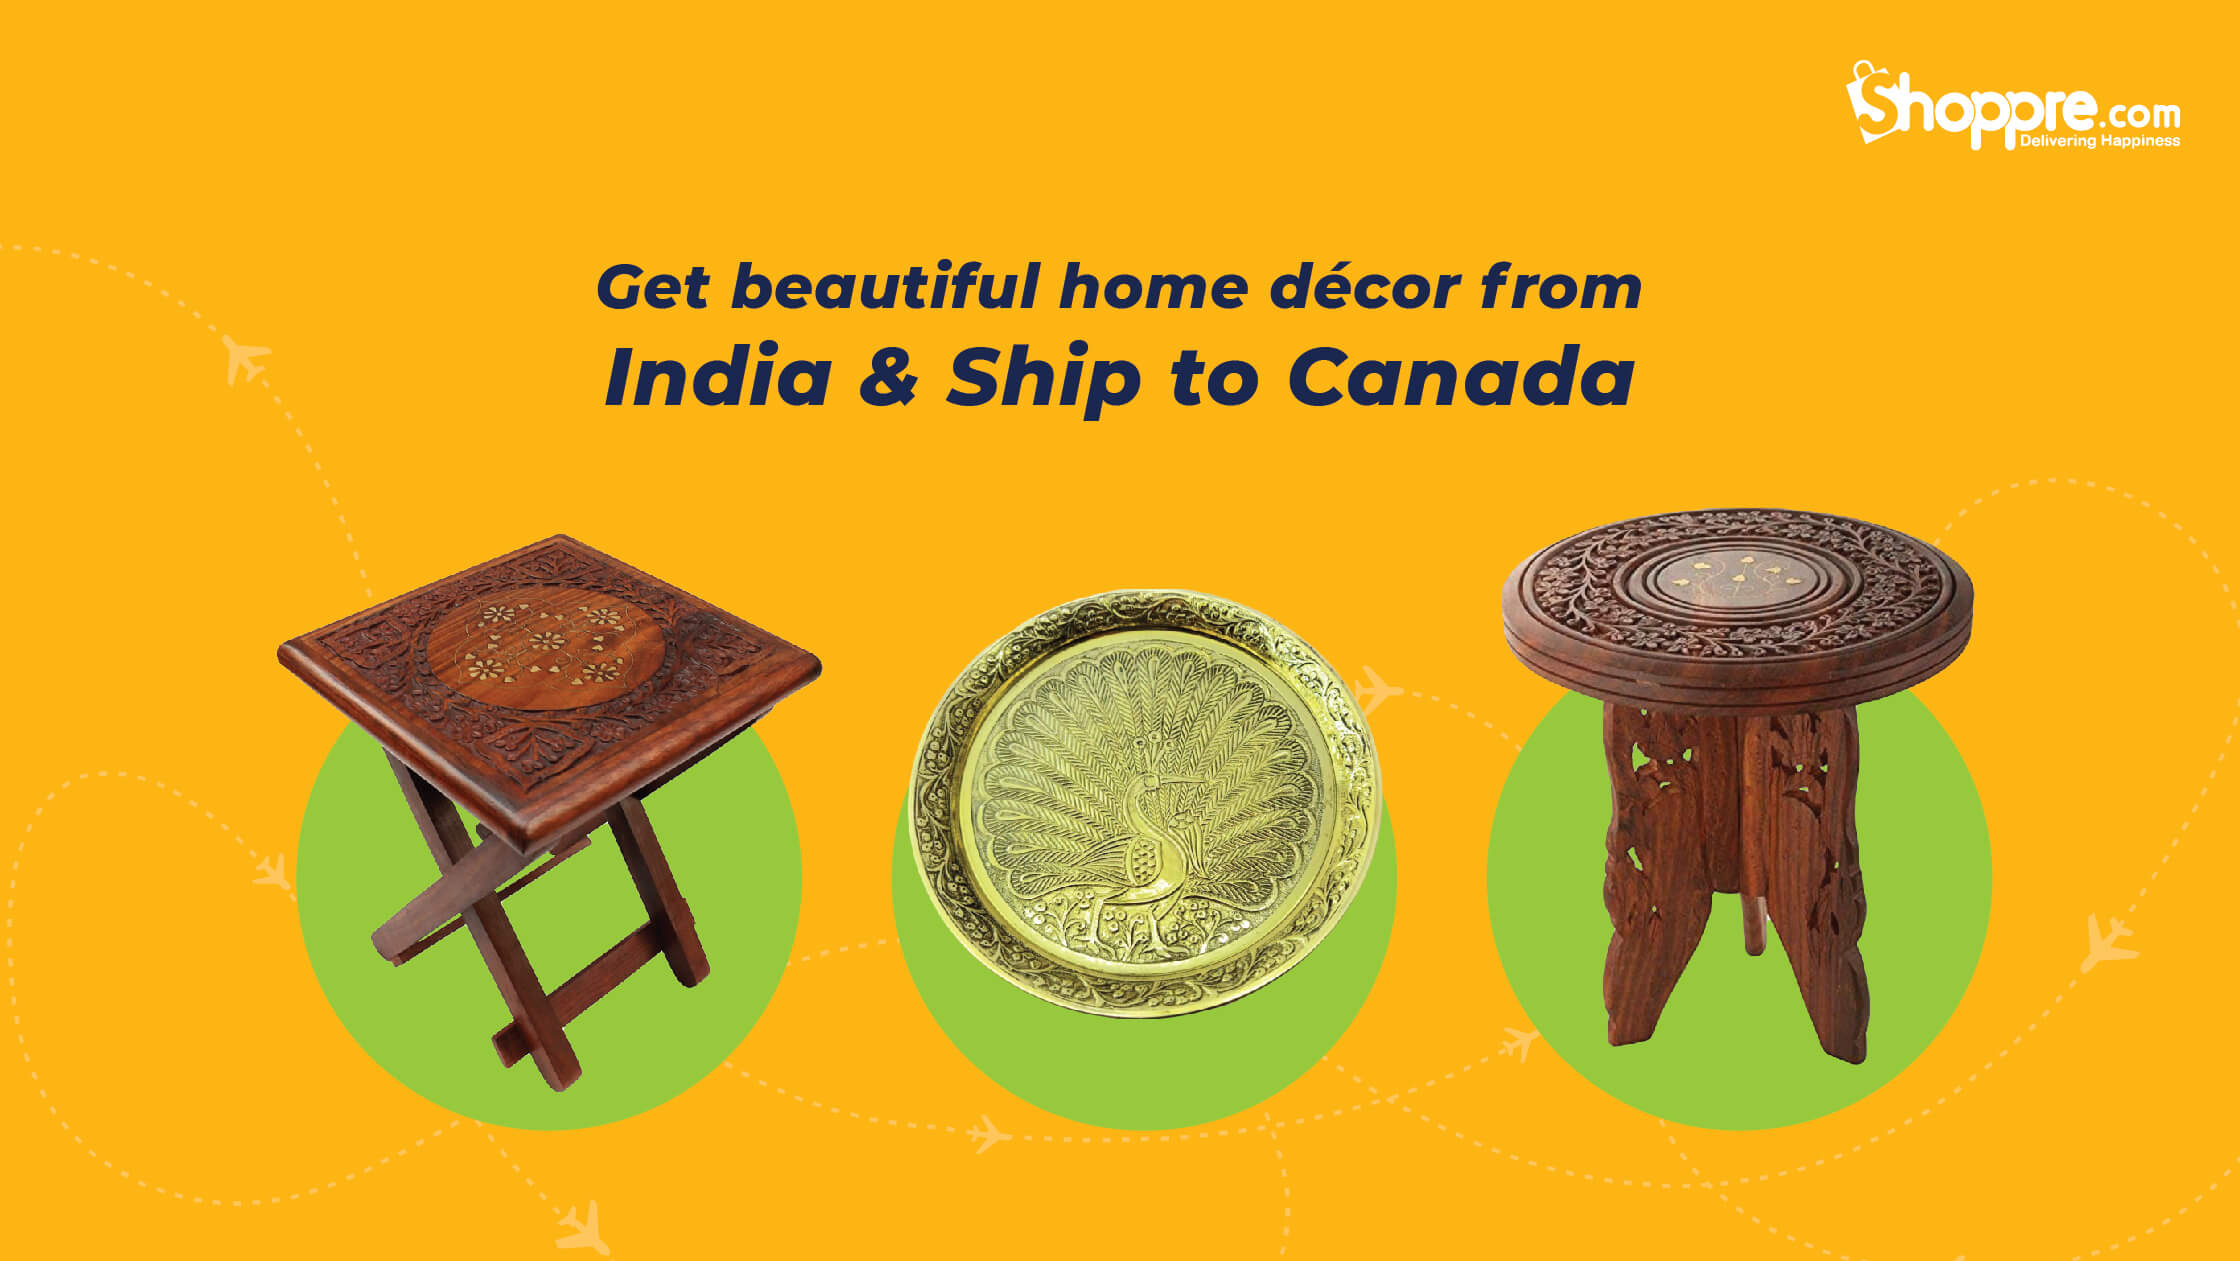 Make your home look different with fascinating home décor from India